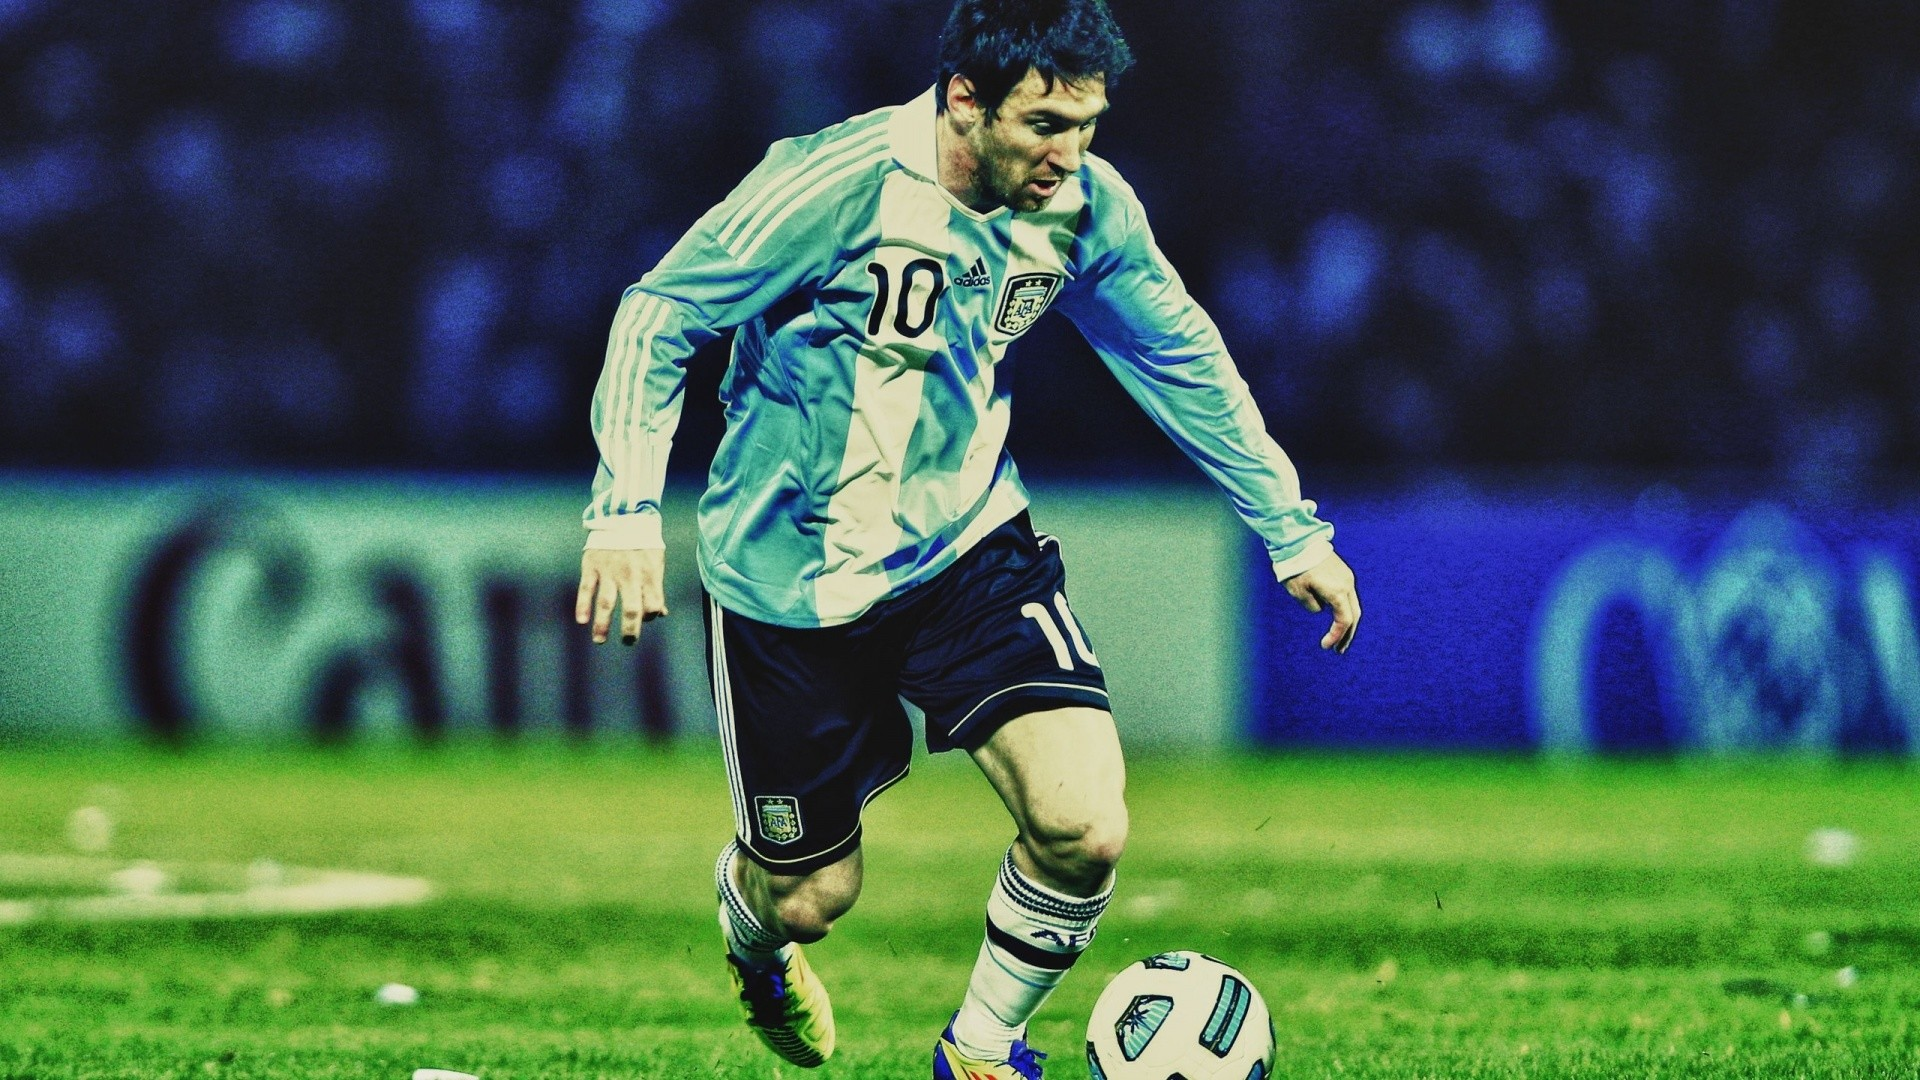 1920x1080 wallpaper.wiki-Argentina-Soccer-Wallpaper-Download-Free-PIC-